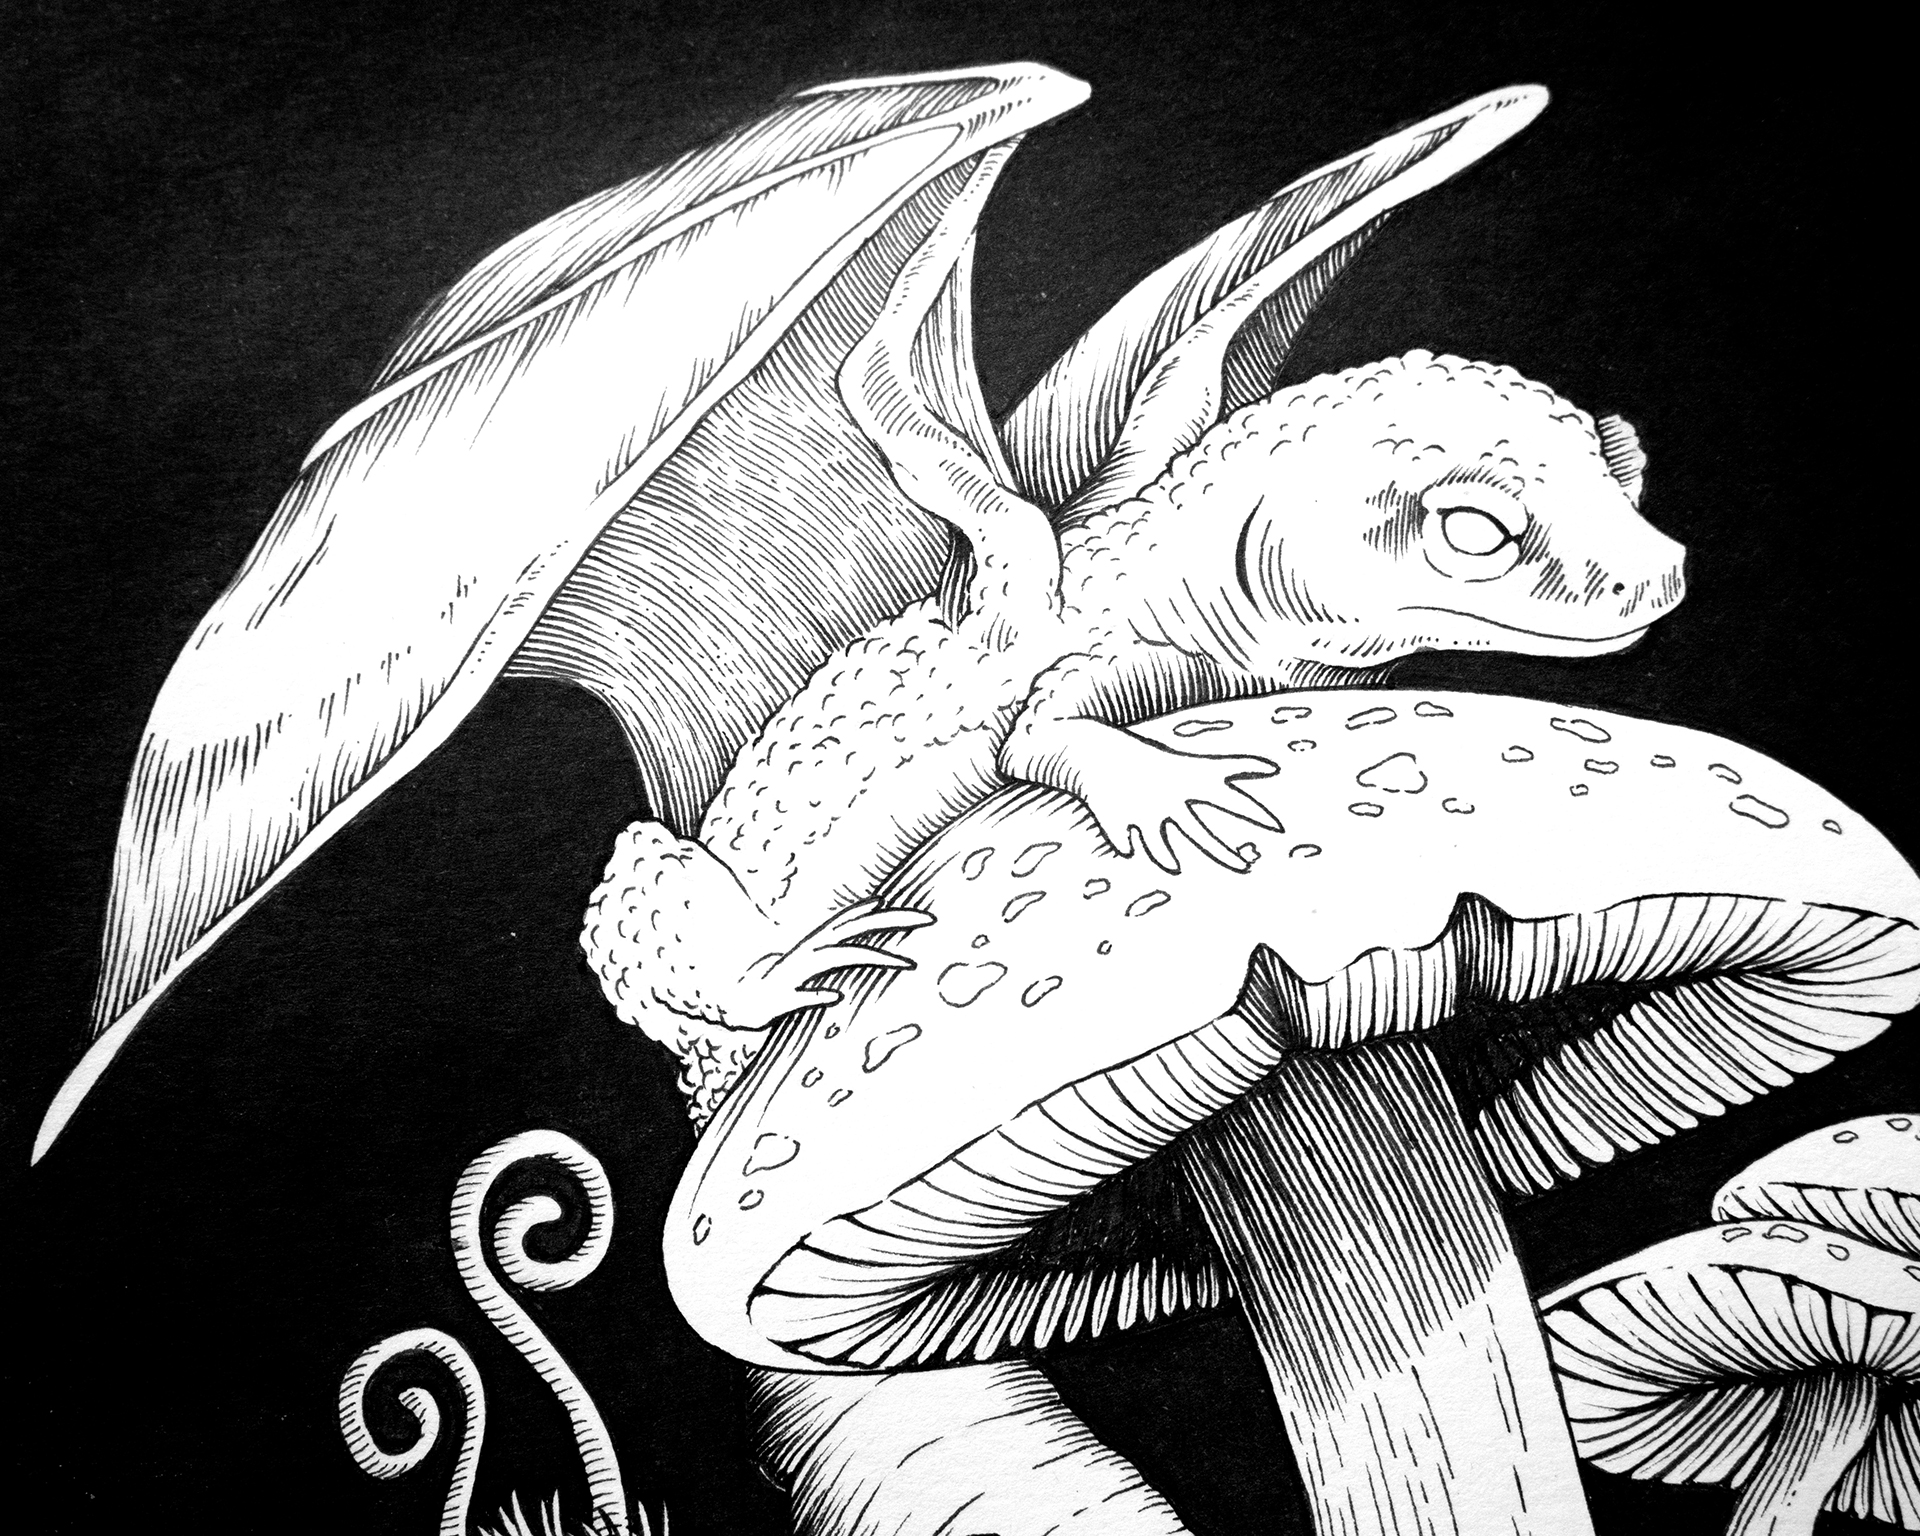 Jenn Sneary Illustration, Treasure Trove, floral dragon pen and ink fantasy drawings